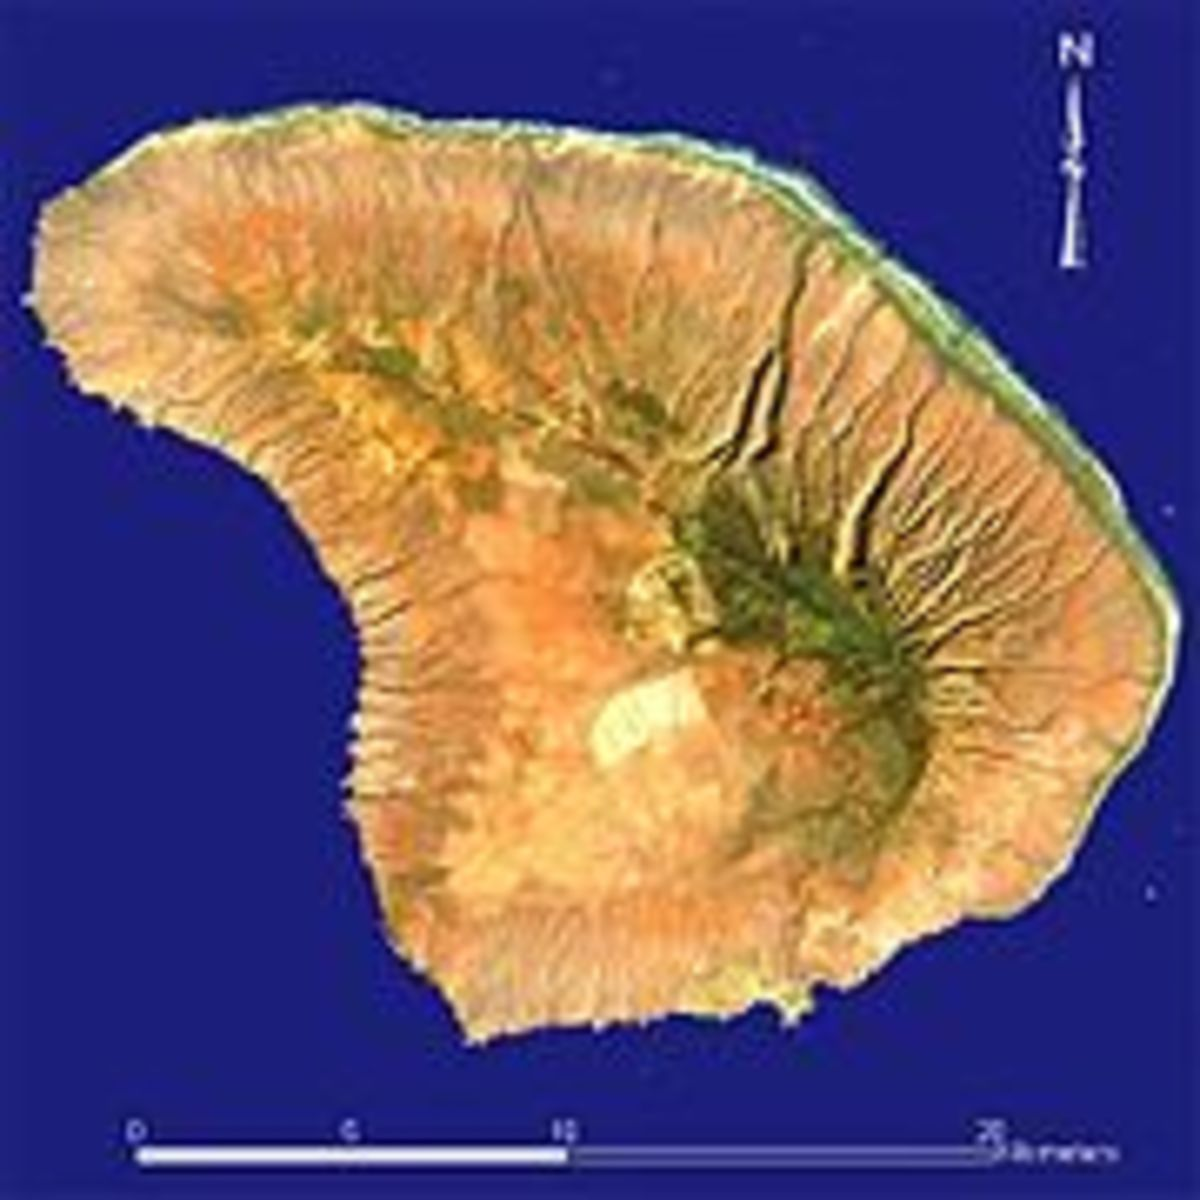 Lanai has a land area of 140.5 square miles.